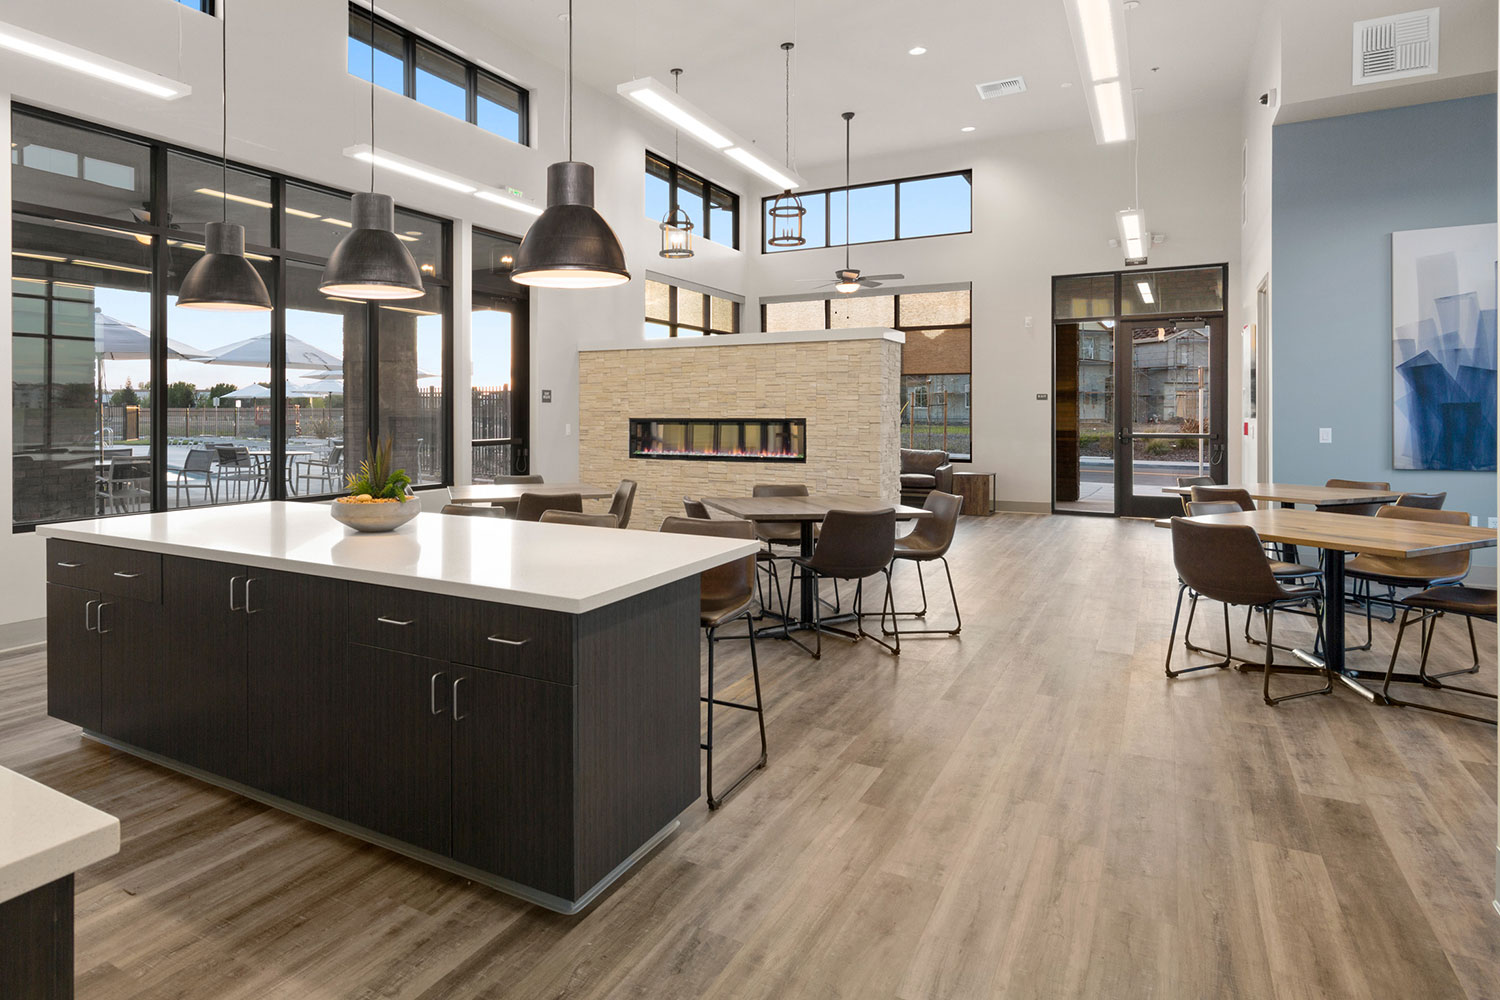 Natomas Meadows Clubhouse Interiors